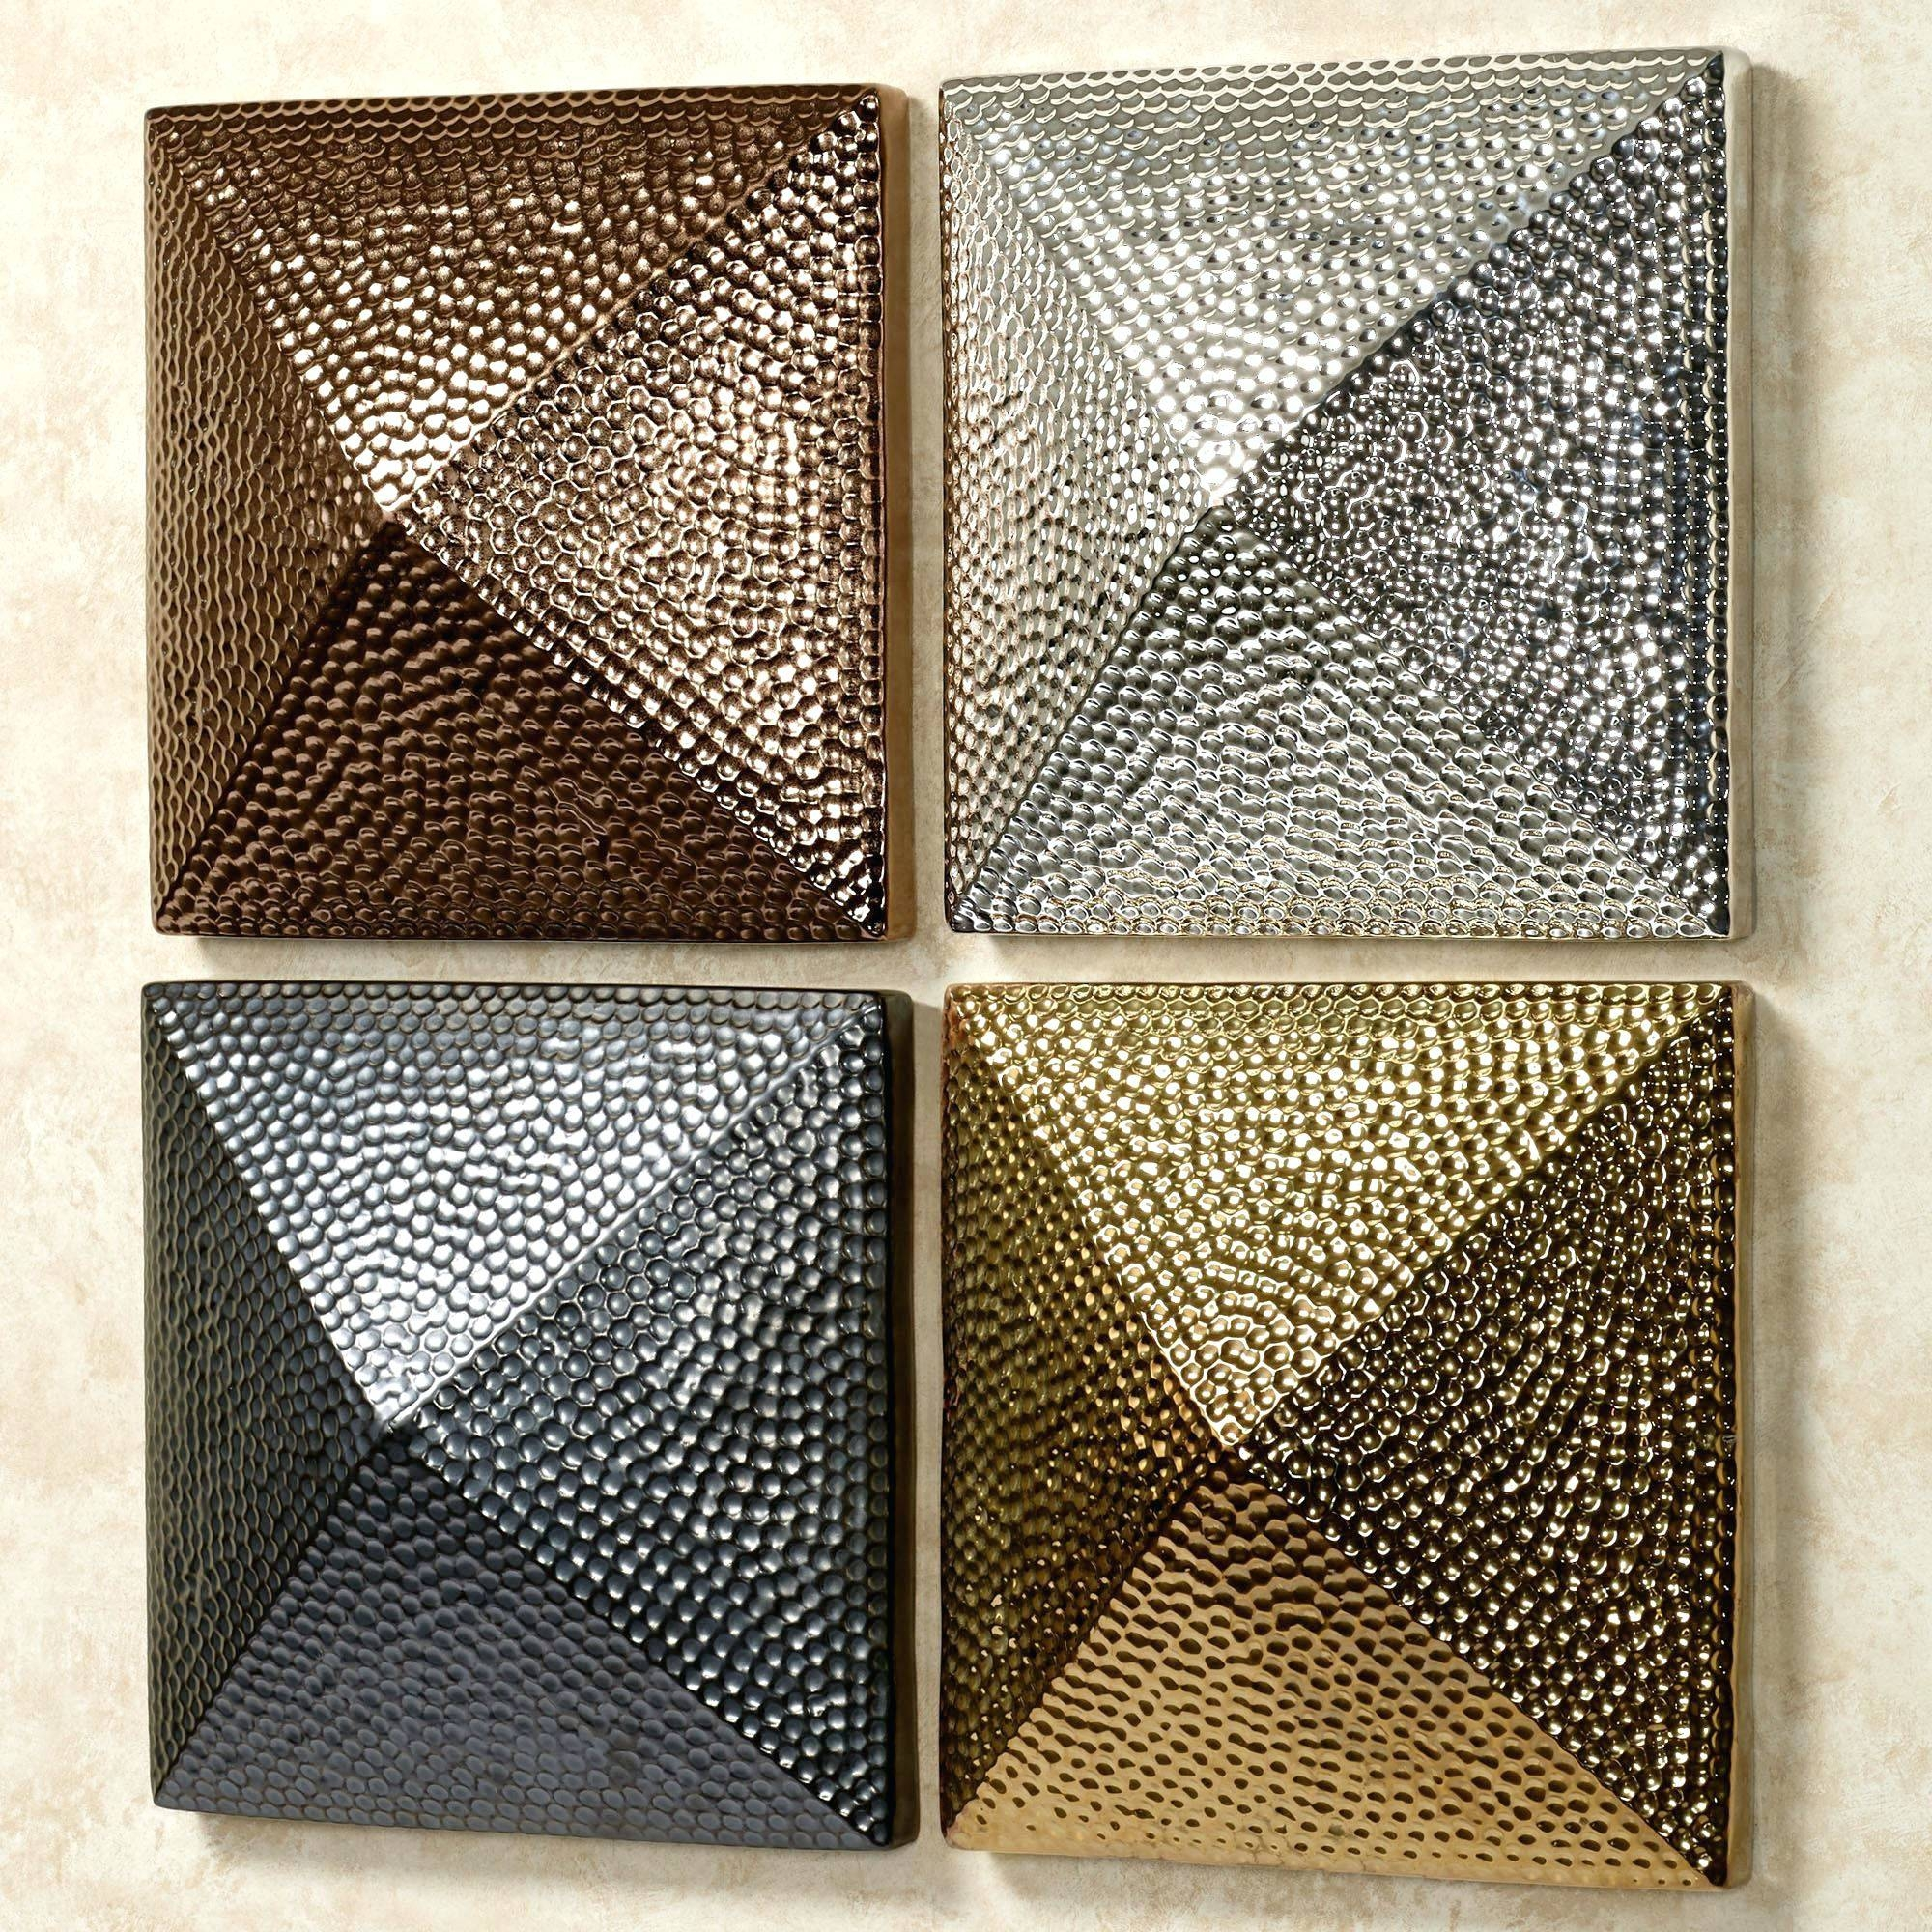 Wall Arts ~ Square Nail Metal Wall Art 4 Square Metal Wall Art Intended For Most Up To Date Square Metal Wall Art (View 20 of 20)